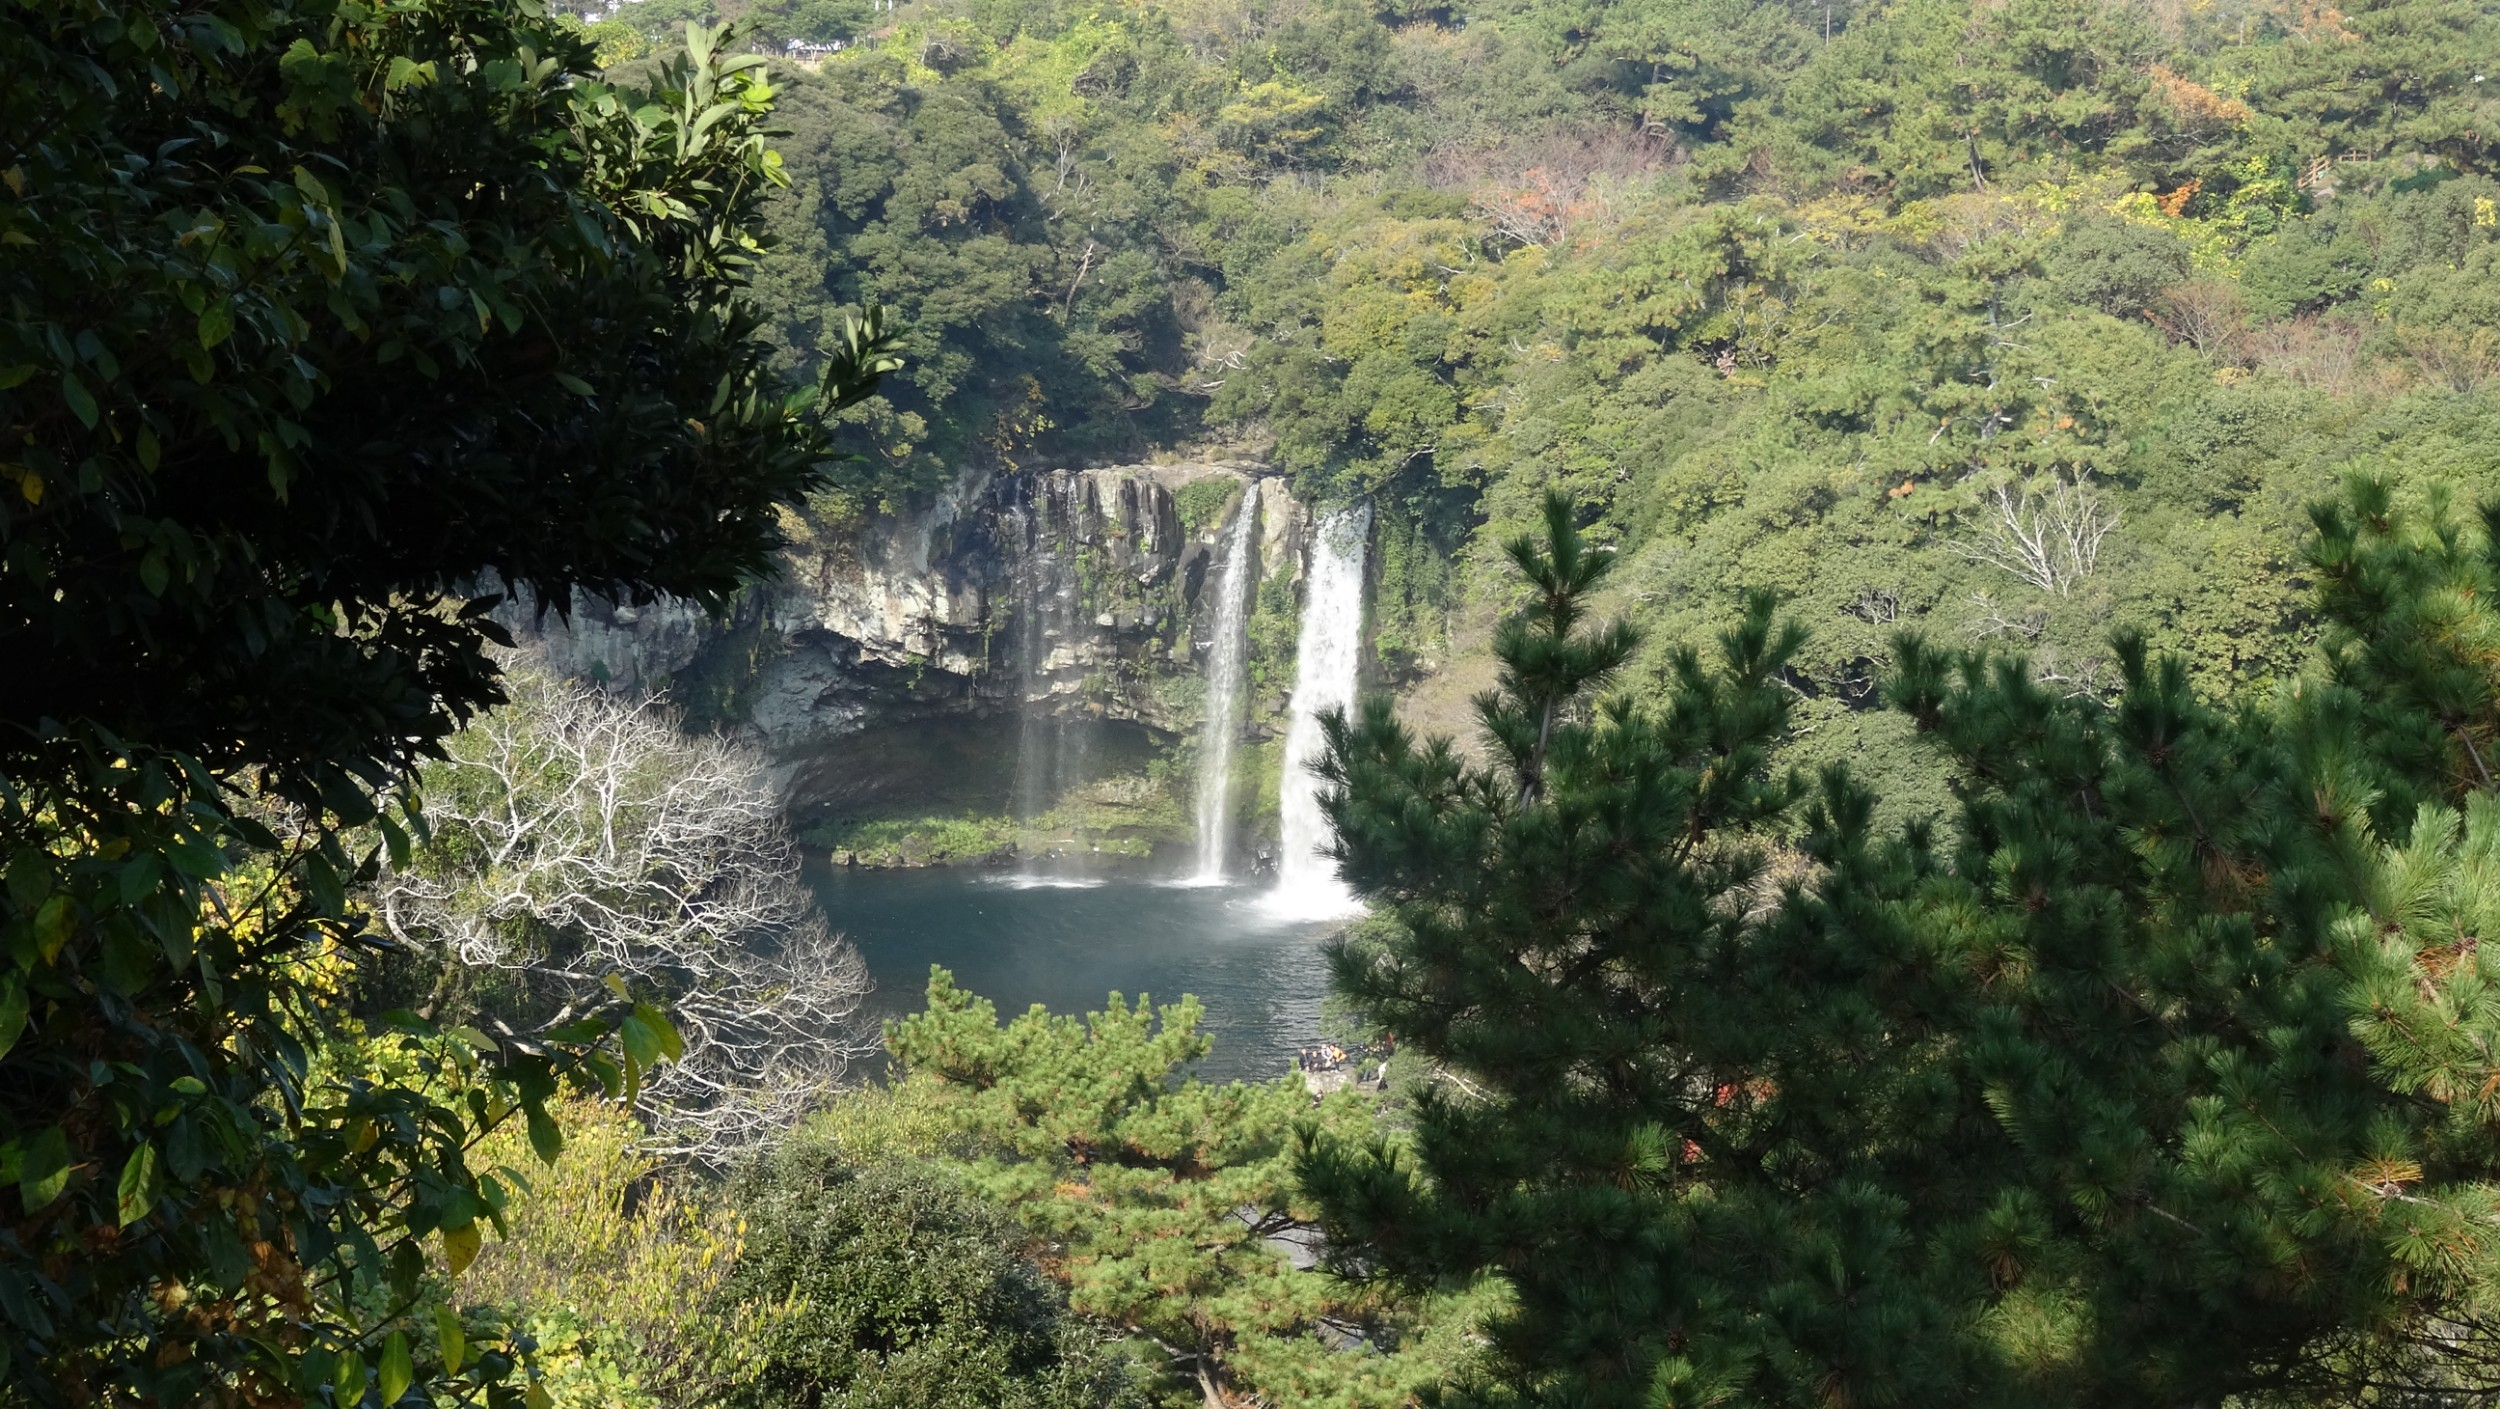 One section of the Cheonjeyeon Waterfall